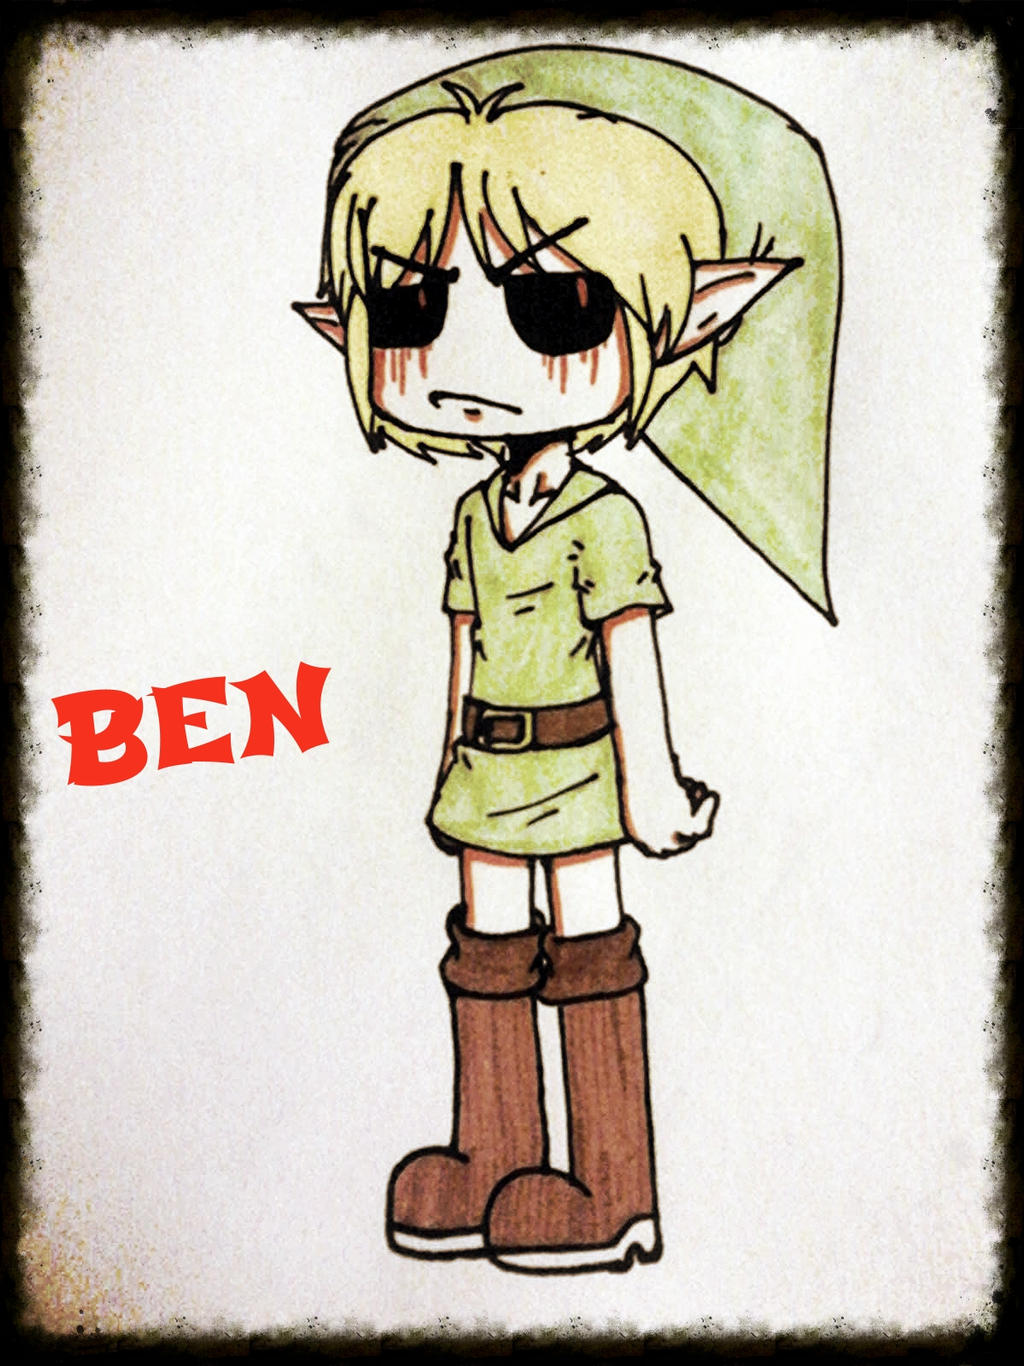 BEN Drowned by xKillErsHAvenx on DeviantArt